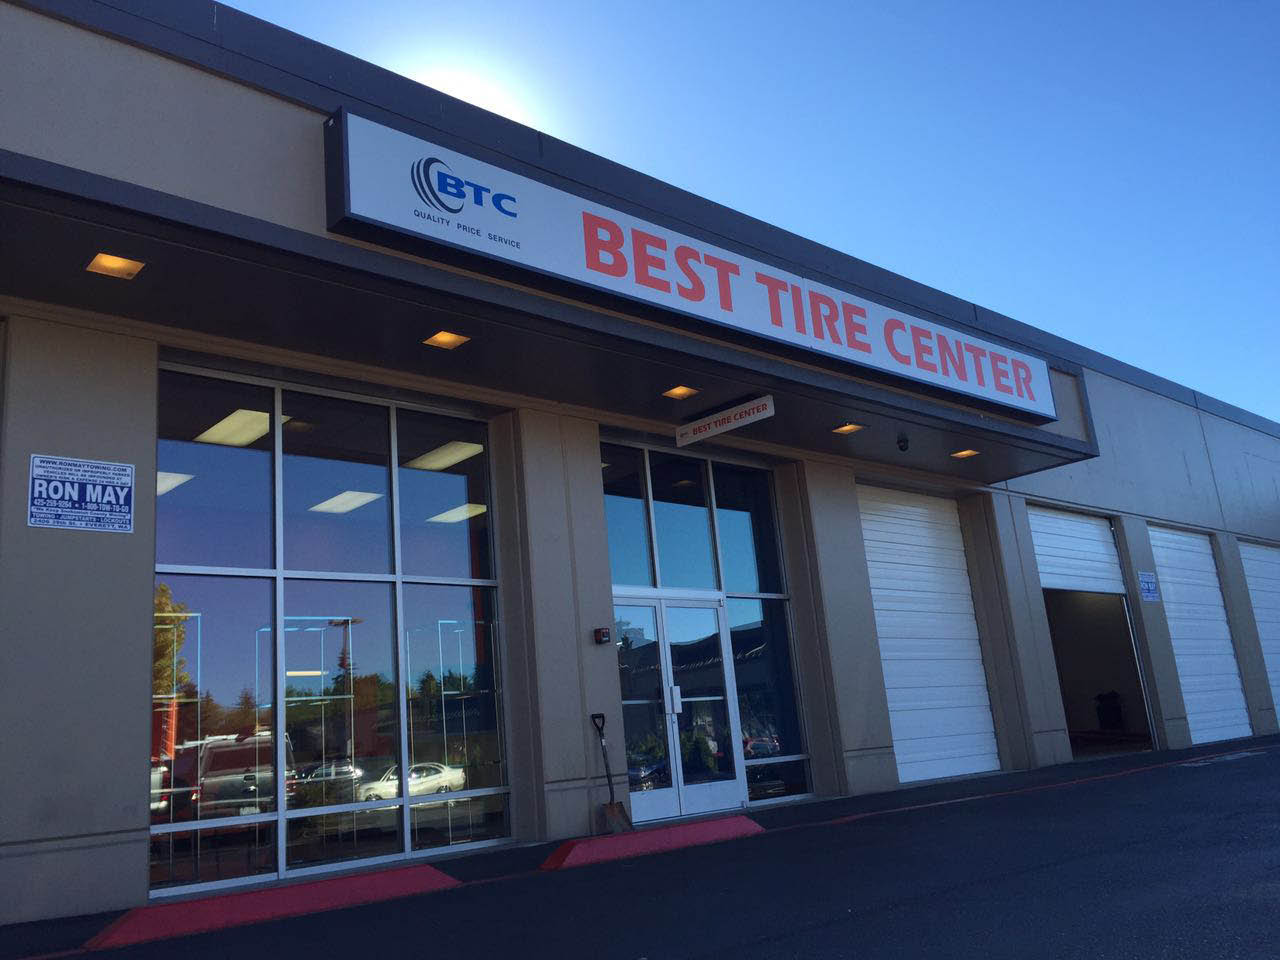 Tire stores in Tacoma, WA - Tire stores in Parkland, WA - outside of Best Tire Center - exterior of Best Tire Center